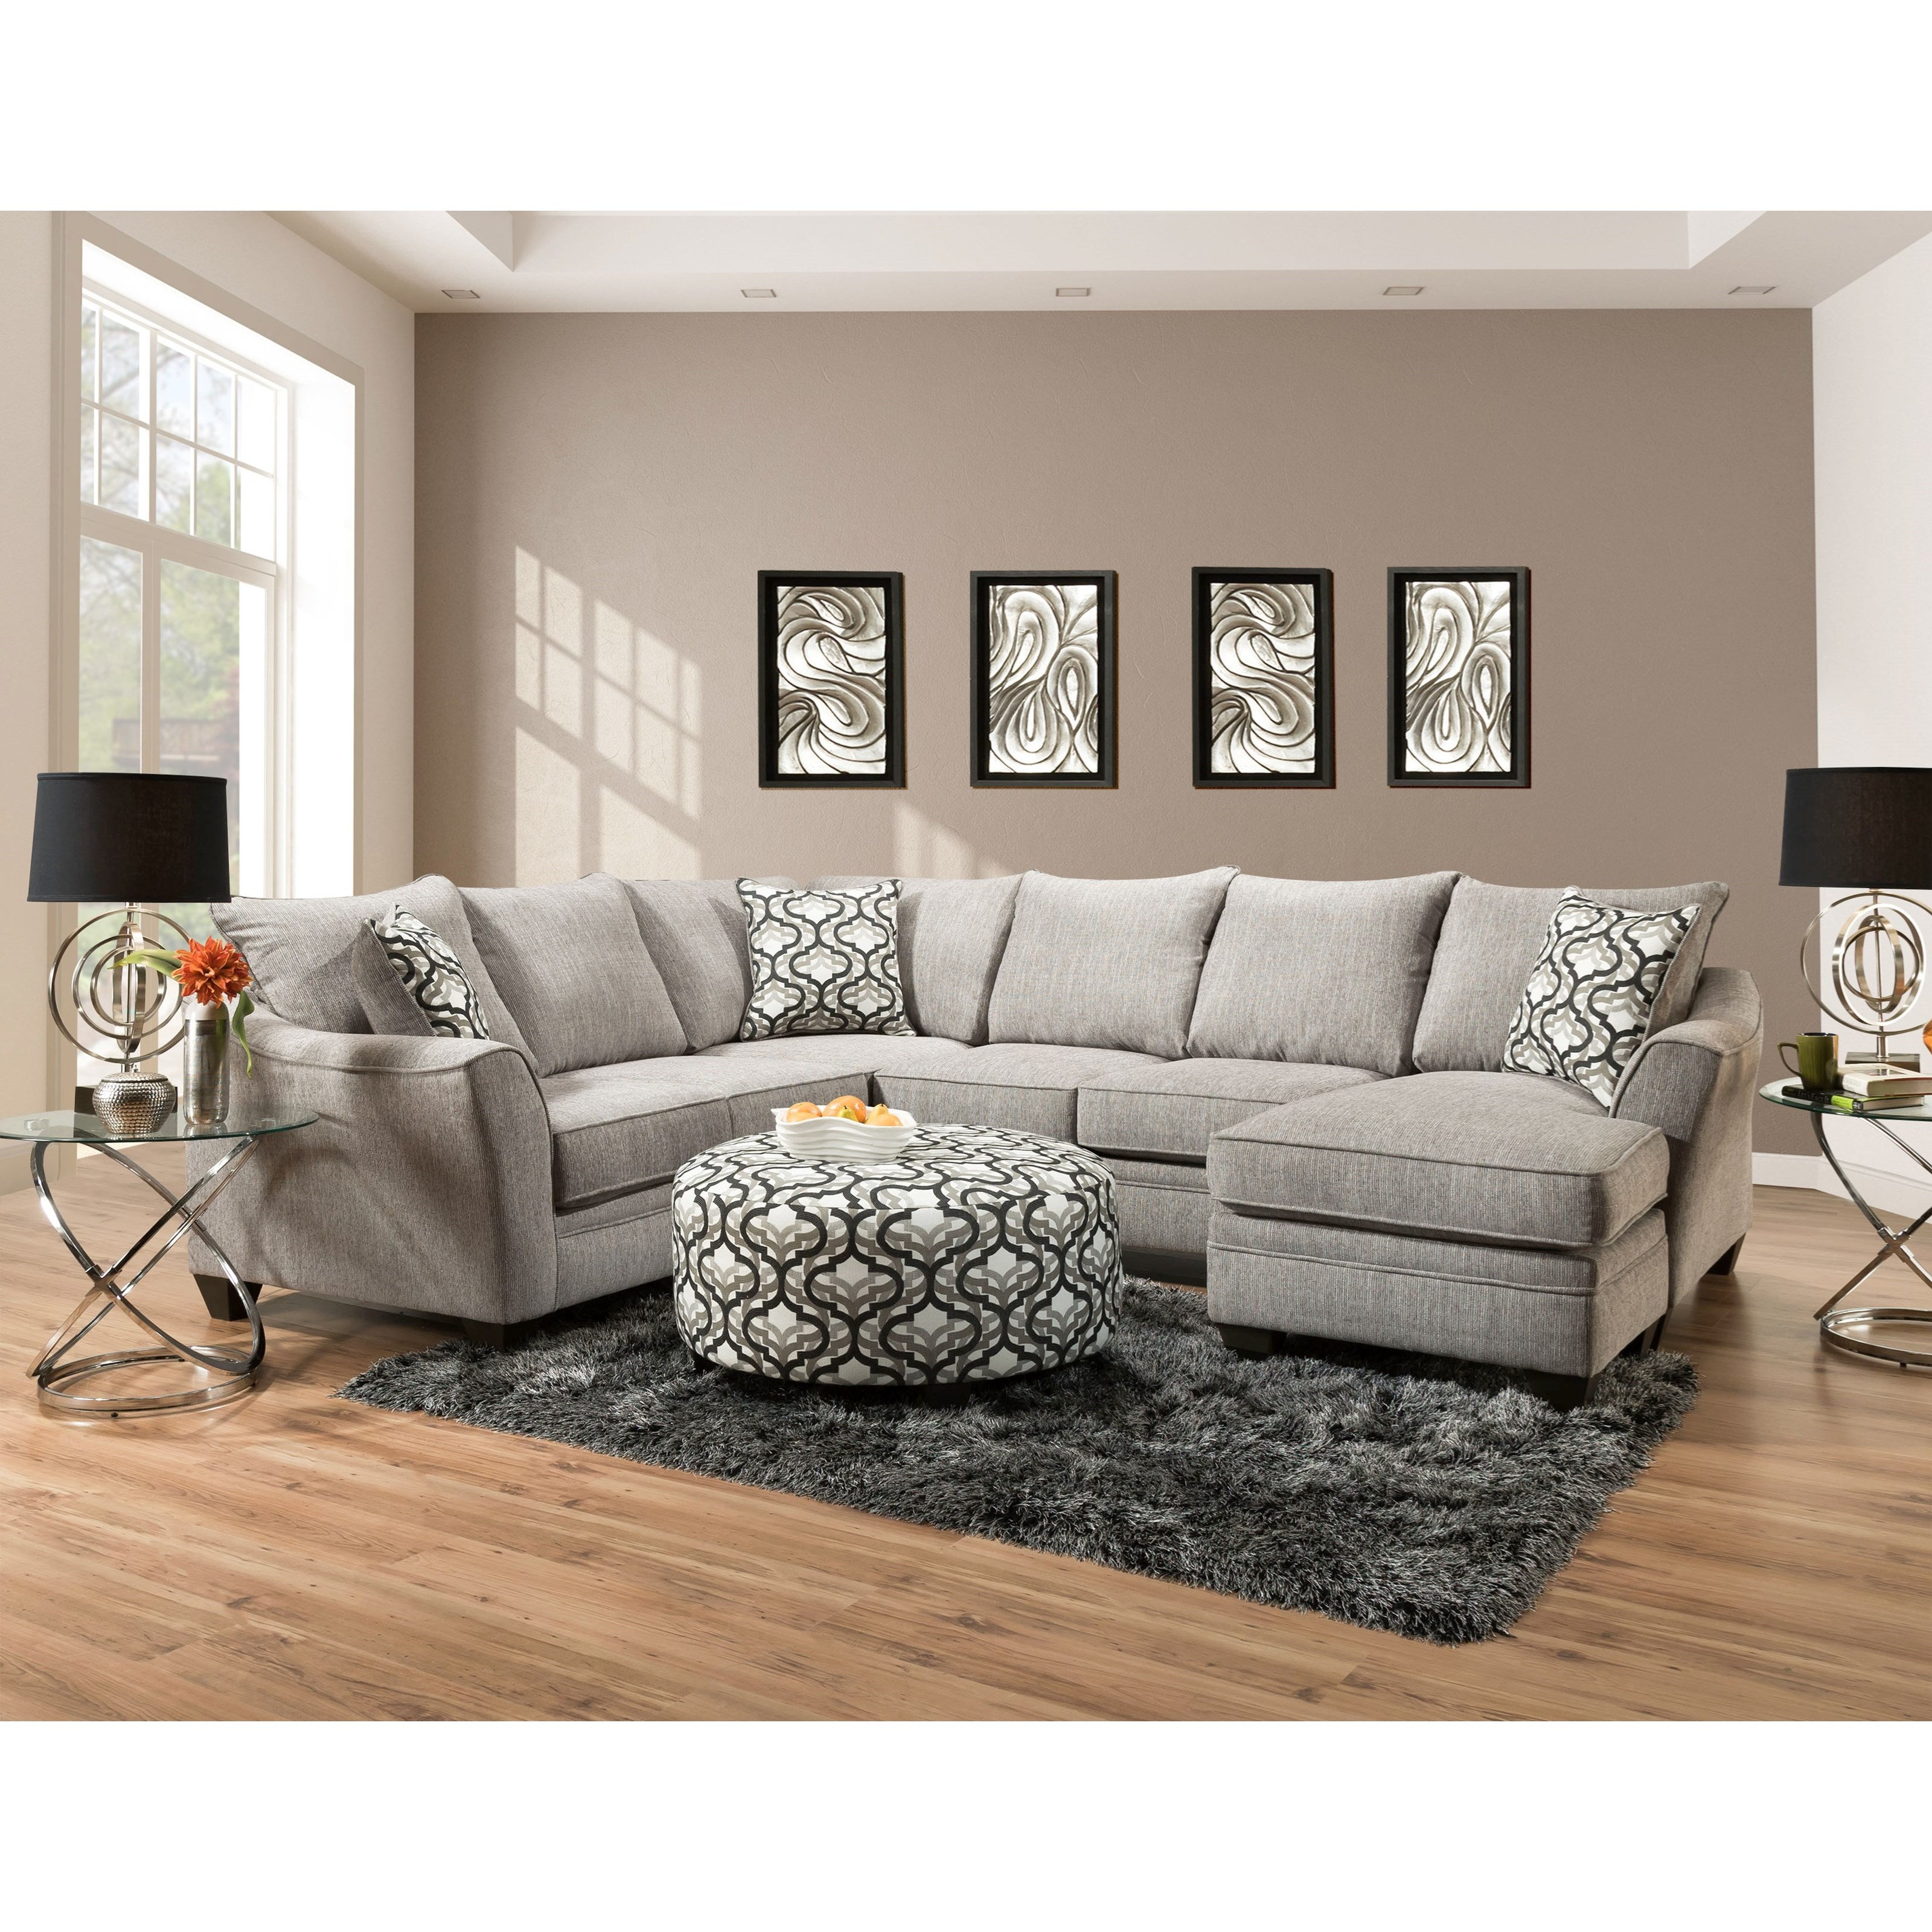 Does American Freight Have Good Furniture: Peak Living 4810 5 Seat Sectional Sofa With Chaise